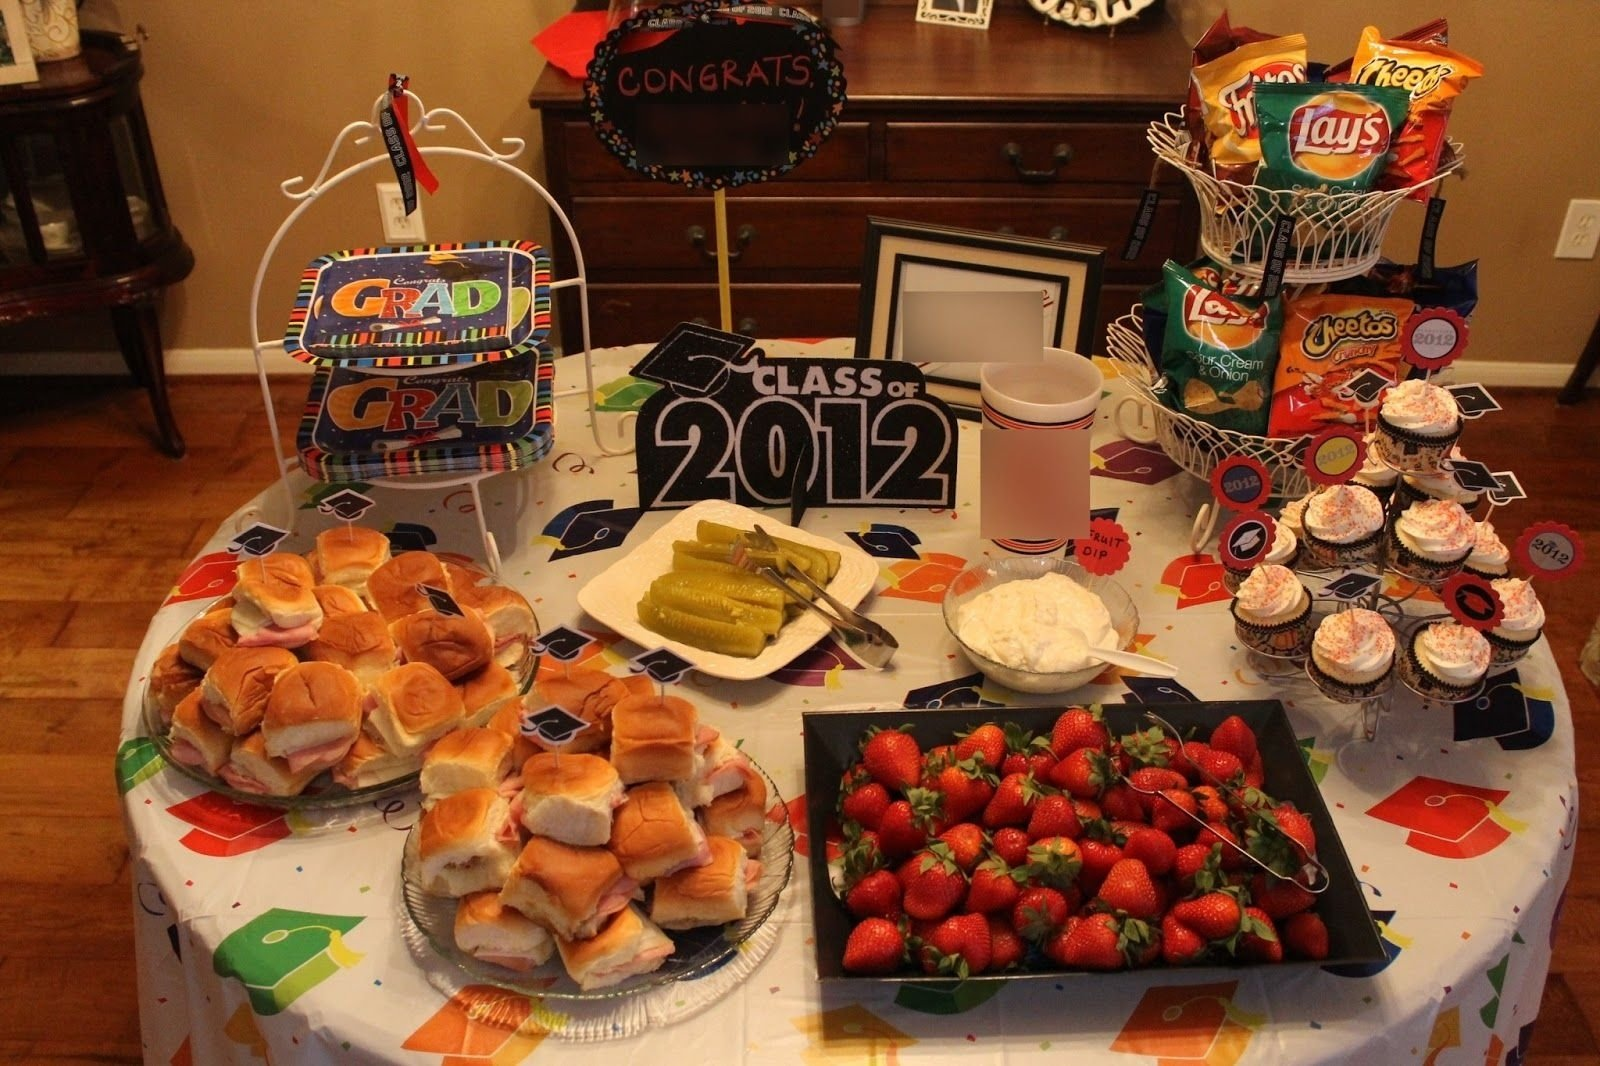 10 Awesome Graduation Open House Food Ideas graduation decoration ideas this is just a simple banner i 1 2020